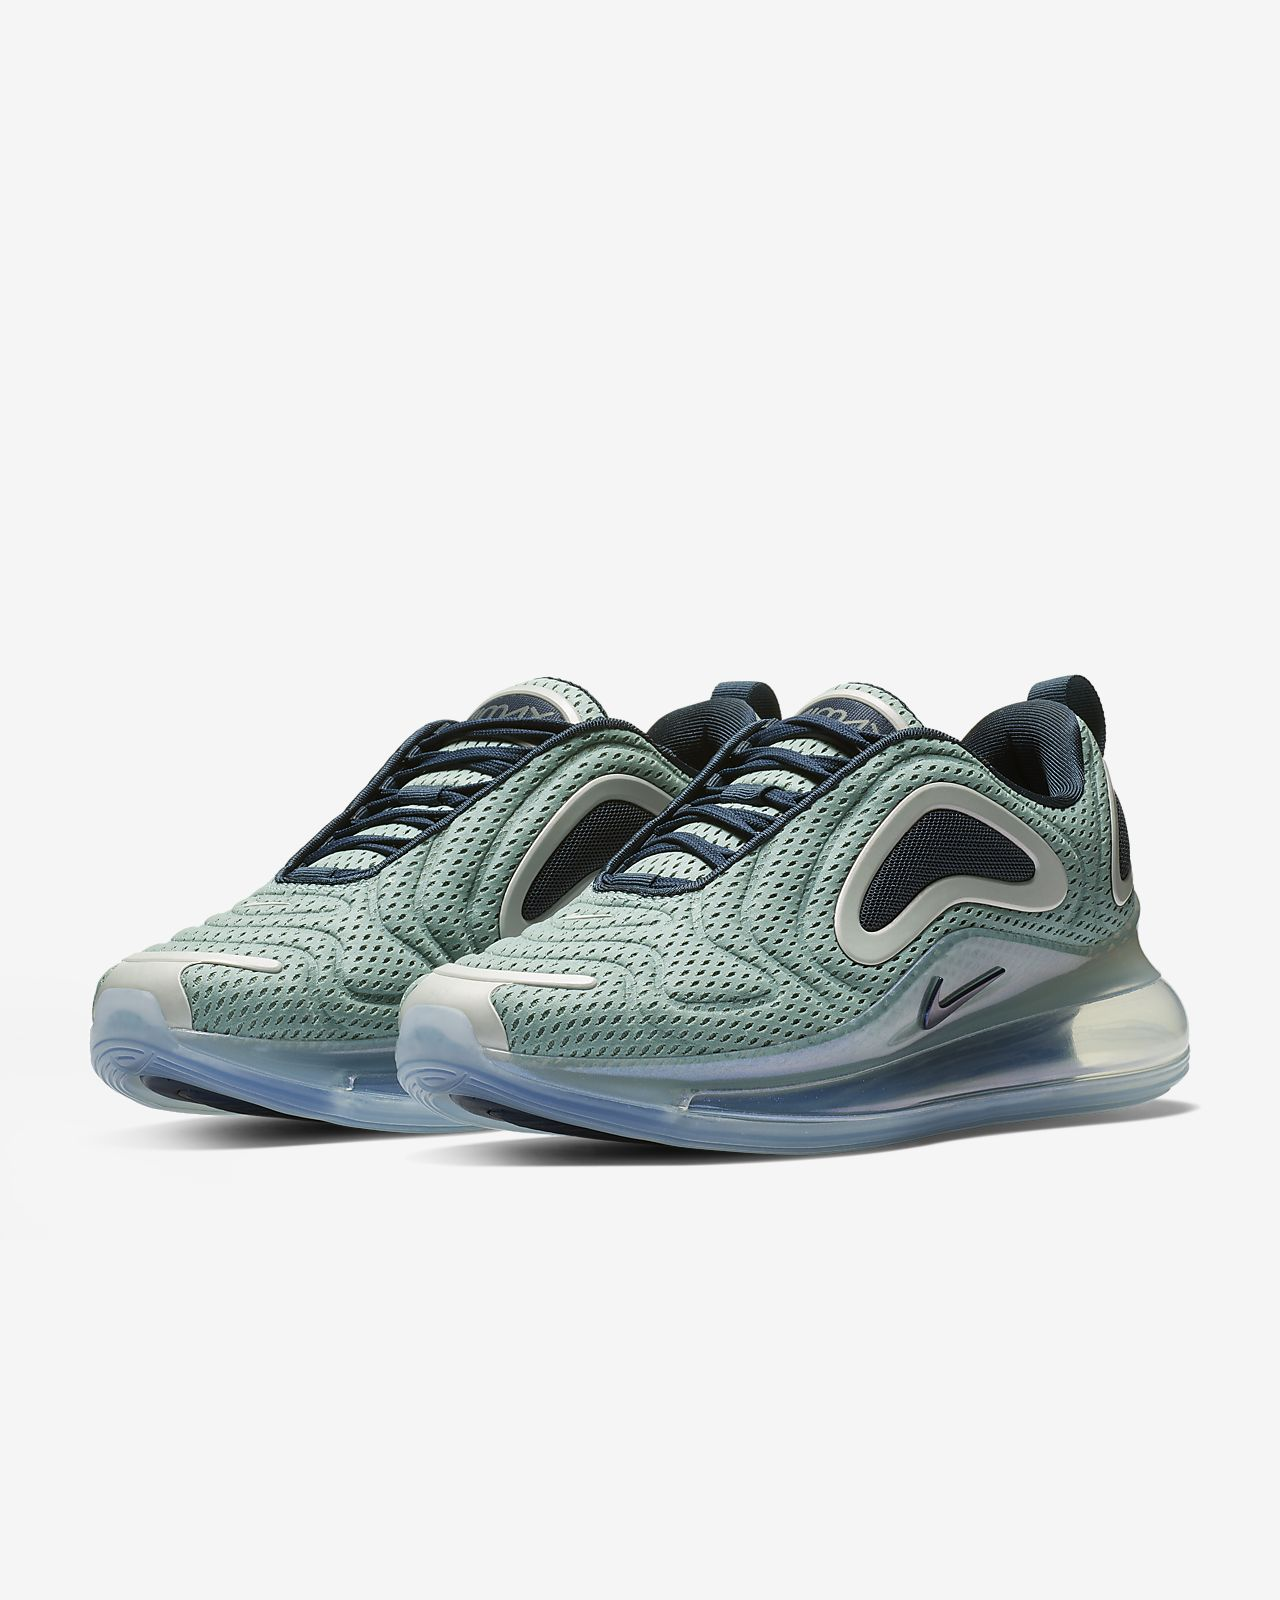 Nike Air Max 720 WMNS 'France' WhiteMidnight Navy Release